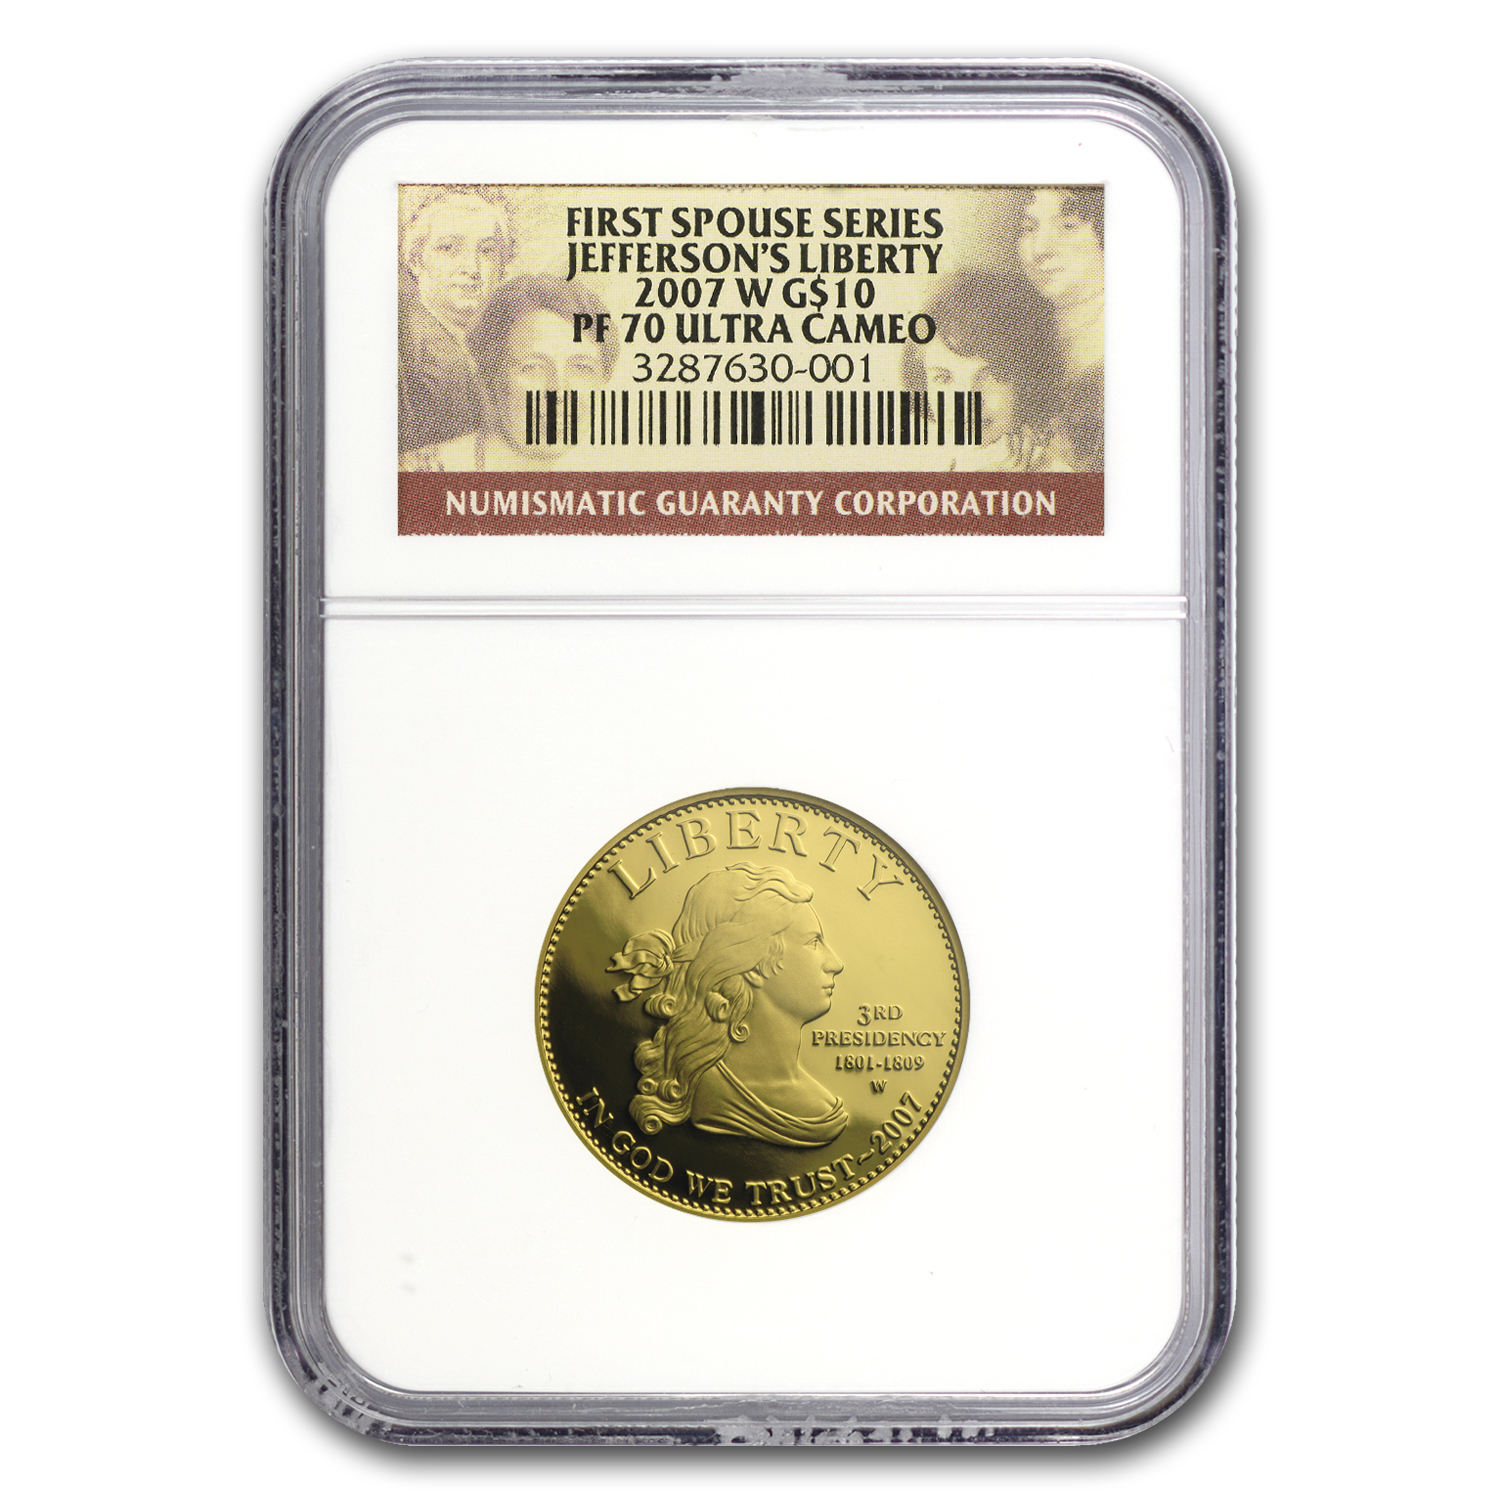 2007-W 1/2 oz Proof Gold Jefferson's Liberty PF-70 NGC